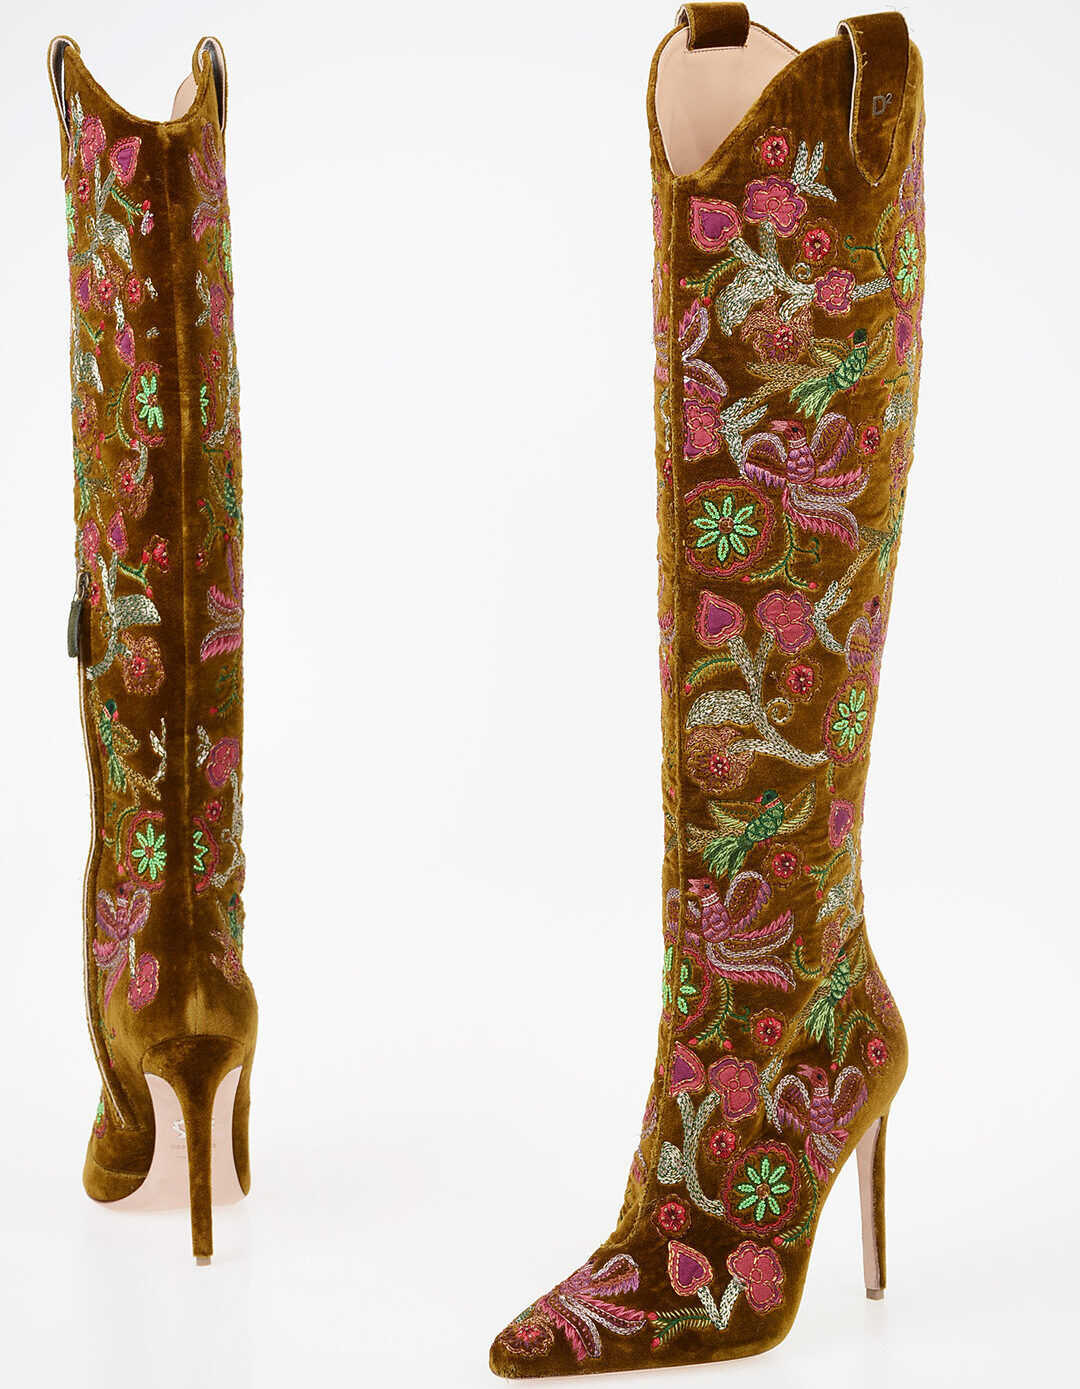 11cm Floral Embroidered Boots thumbnail